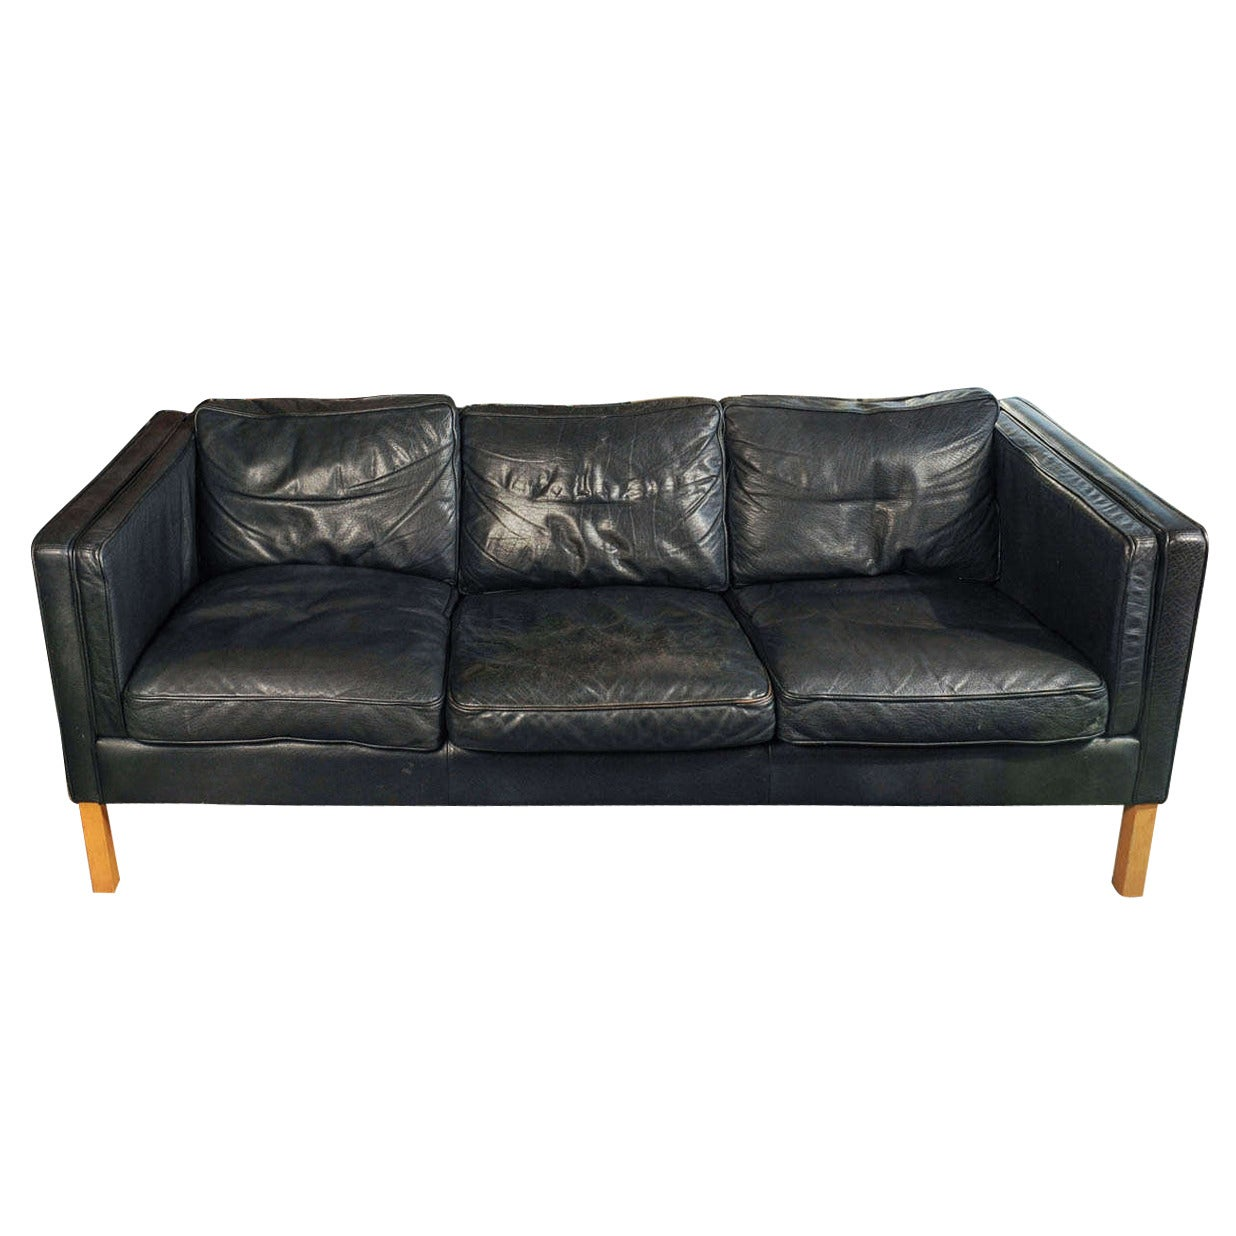 A Vintage Børge Mogensen 3 Seat Sofa By Stouby For